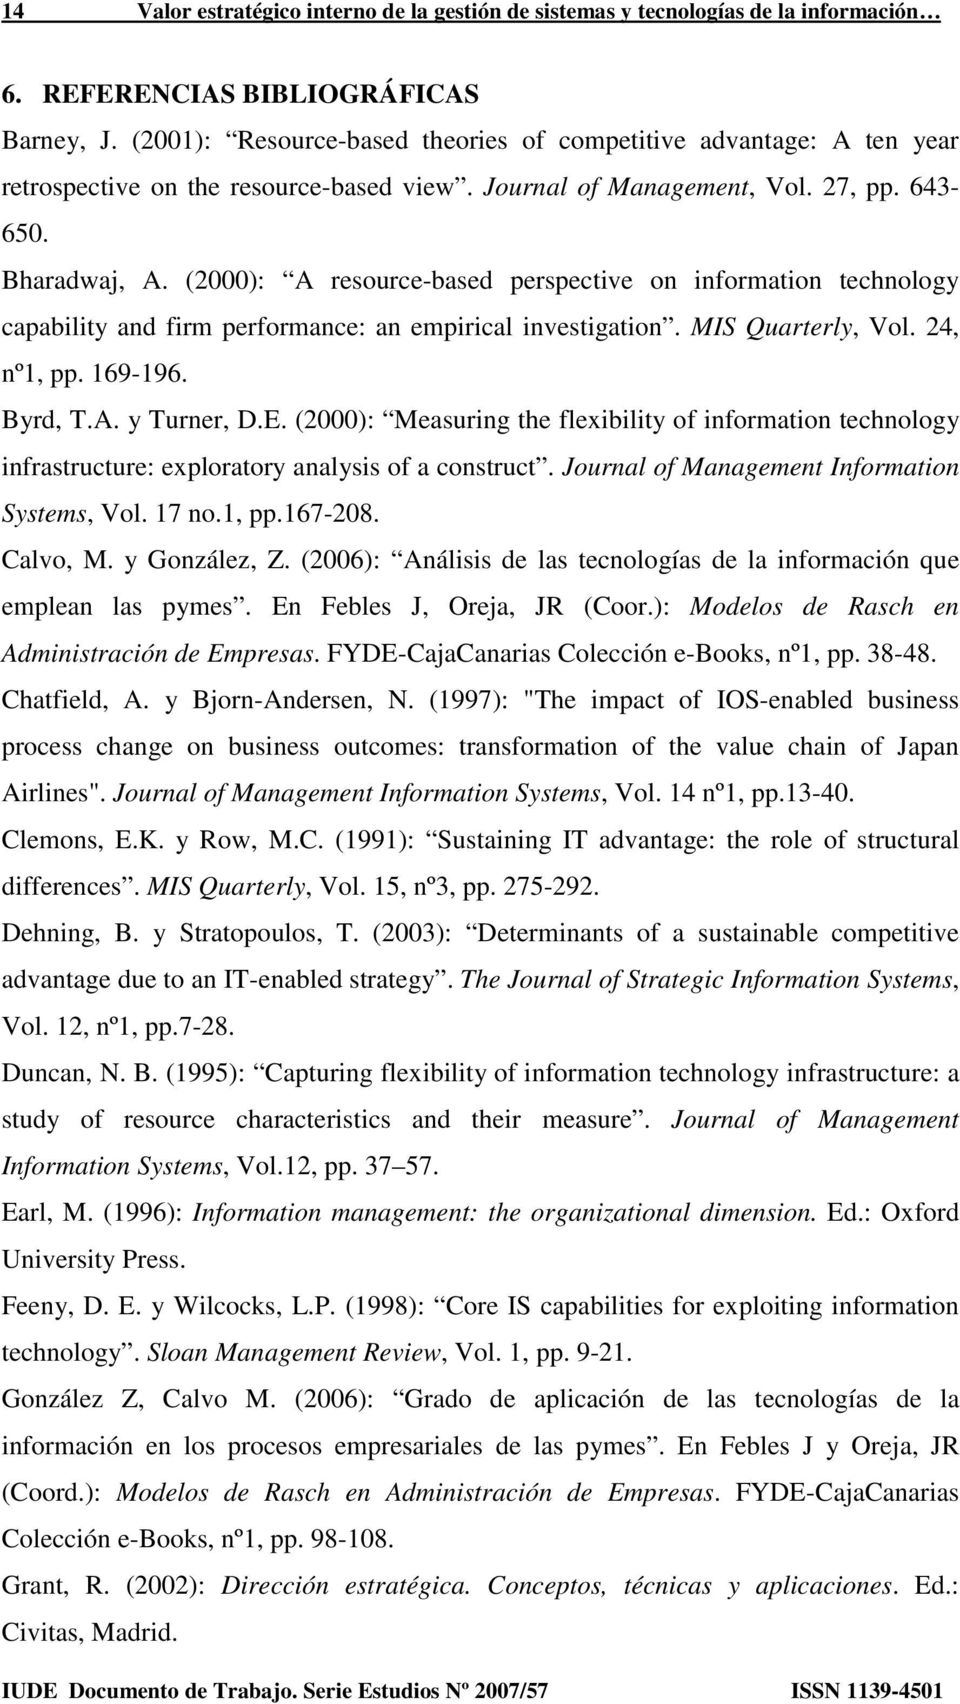 (2000): A resource-based perspective on information technology capability and firm performance: an empirical investigation. MIS Quarterly, Vol. 24, nº1, pp. 169-196. Byrd, T.A. y Turner, D.E.